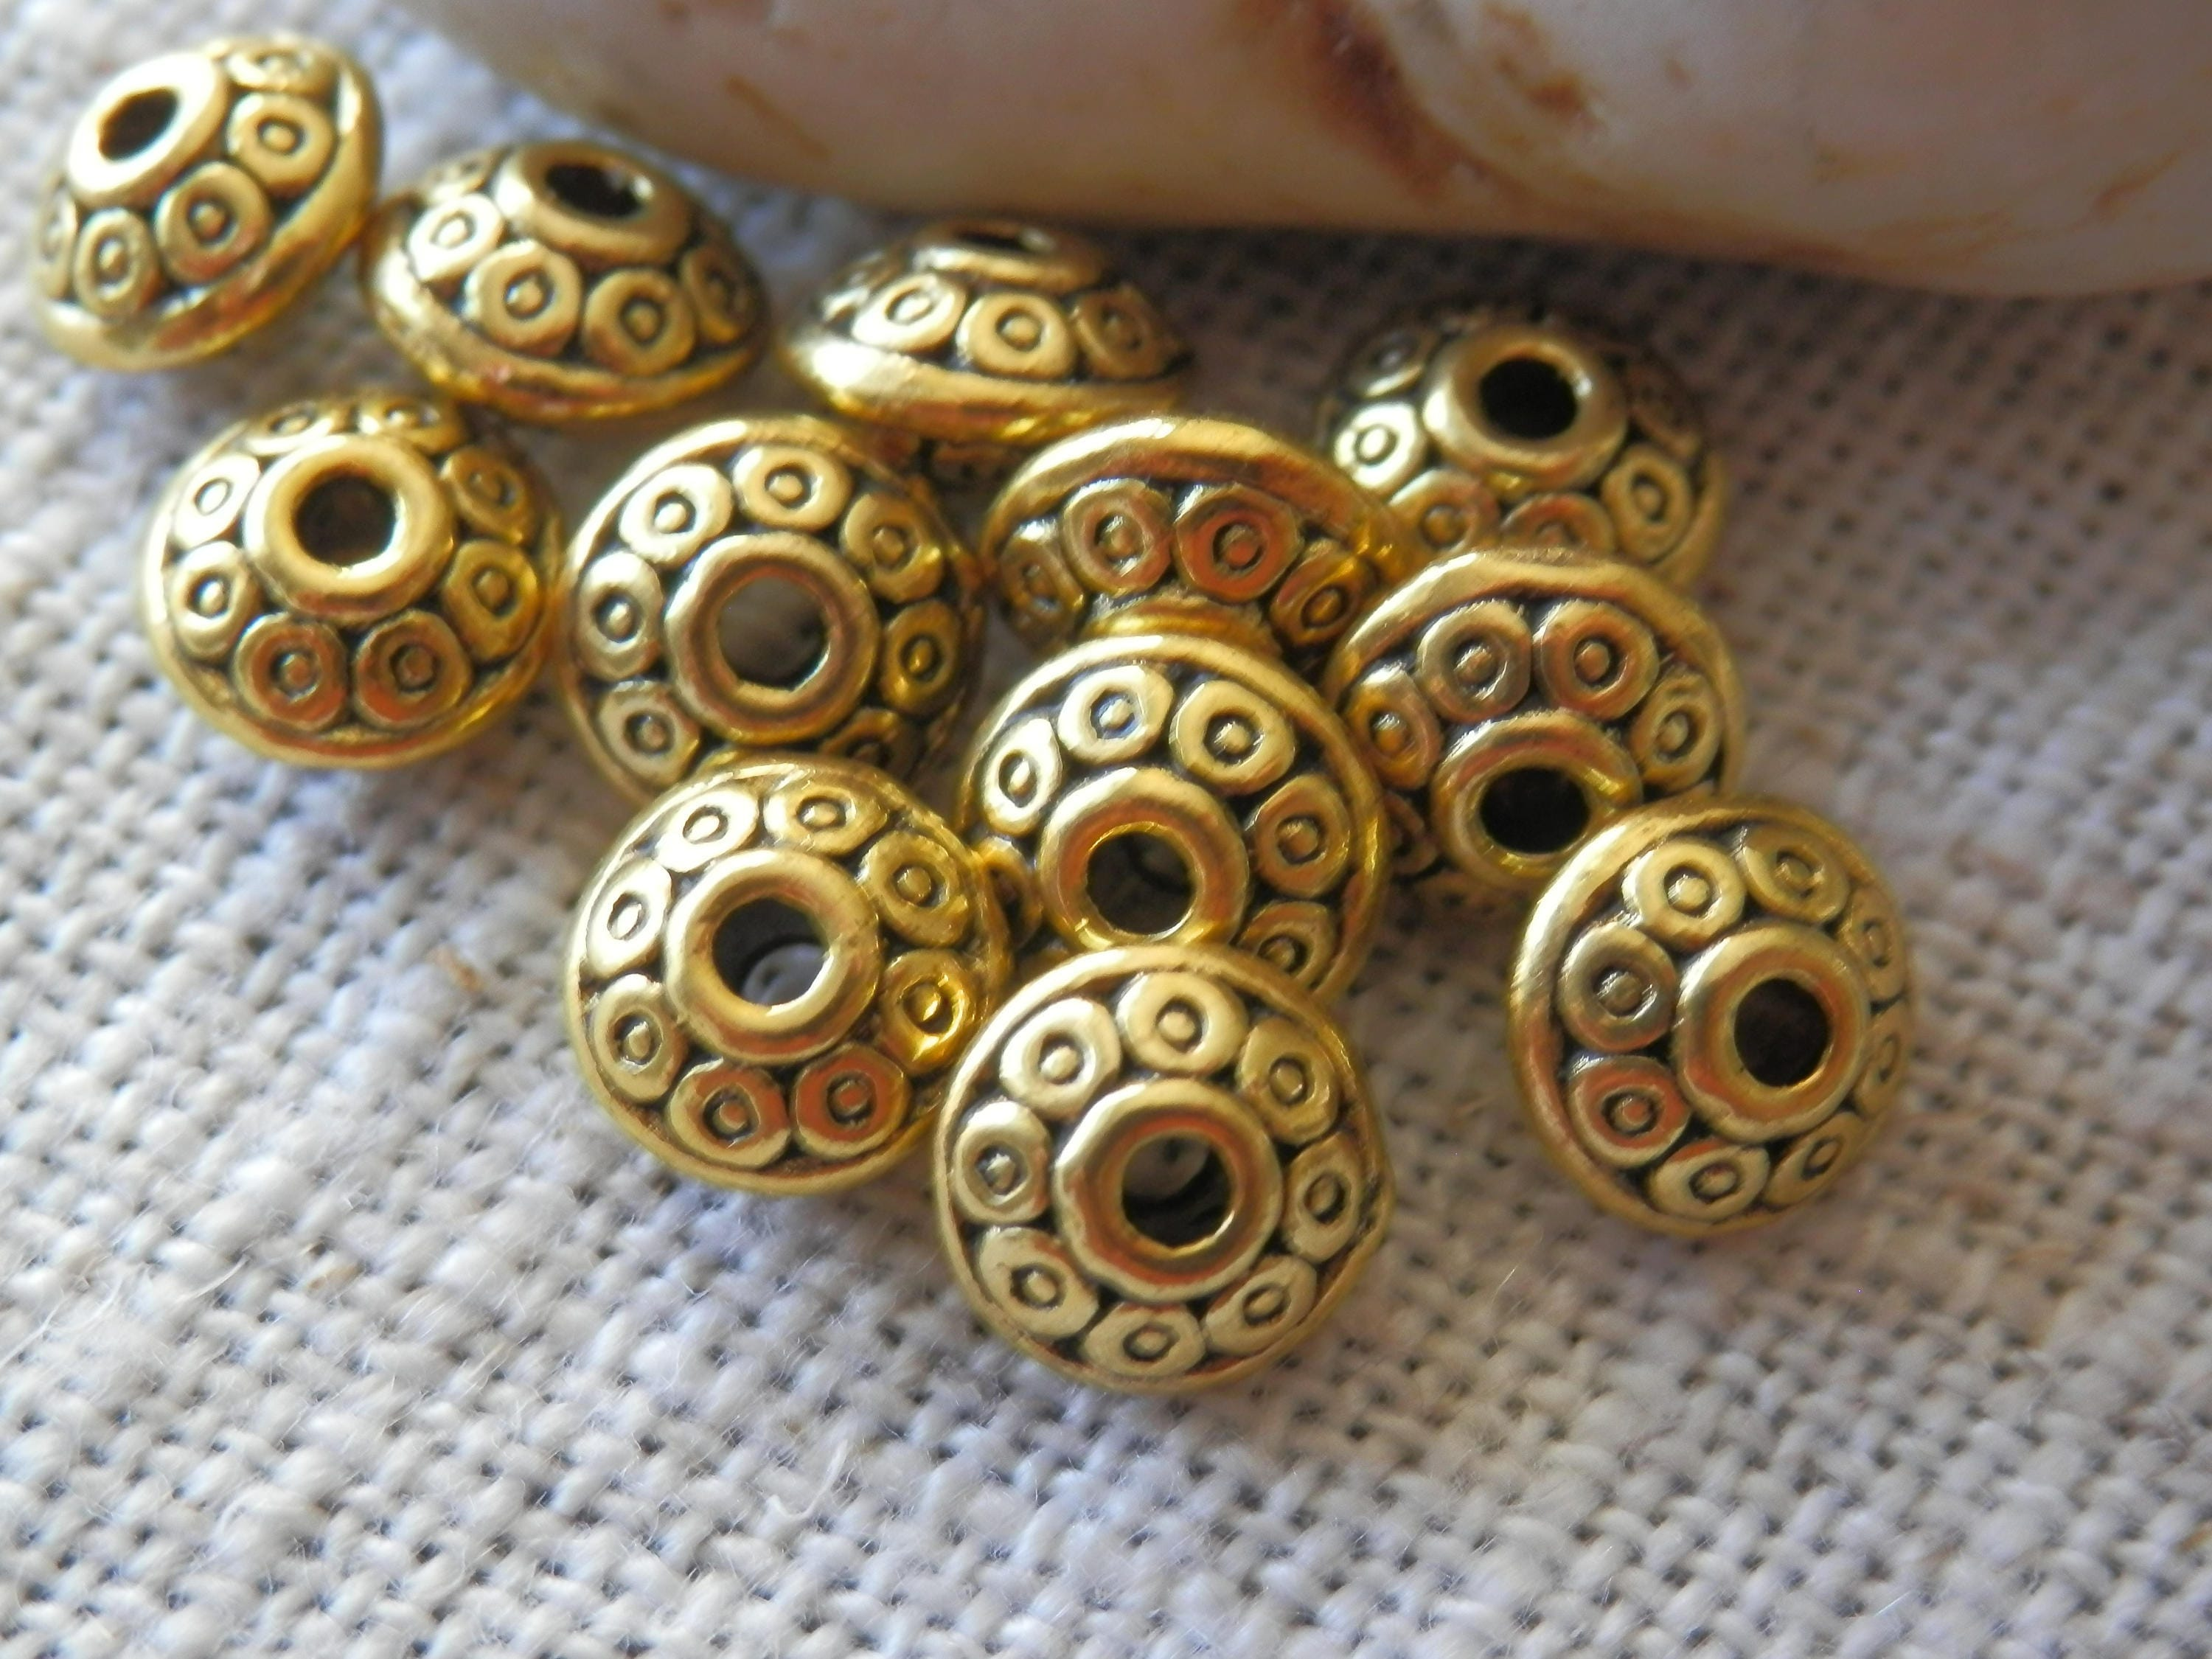 7mm gold tone spacer beads saucer beads rondelle beads for Just my style personalized jewelry studio